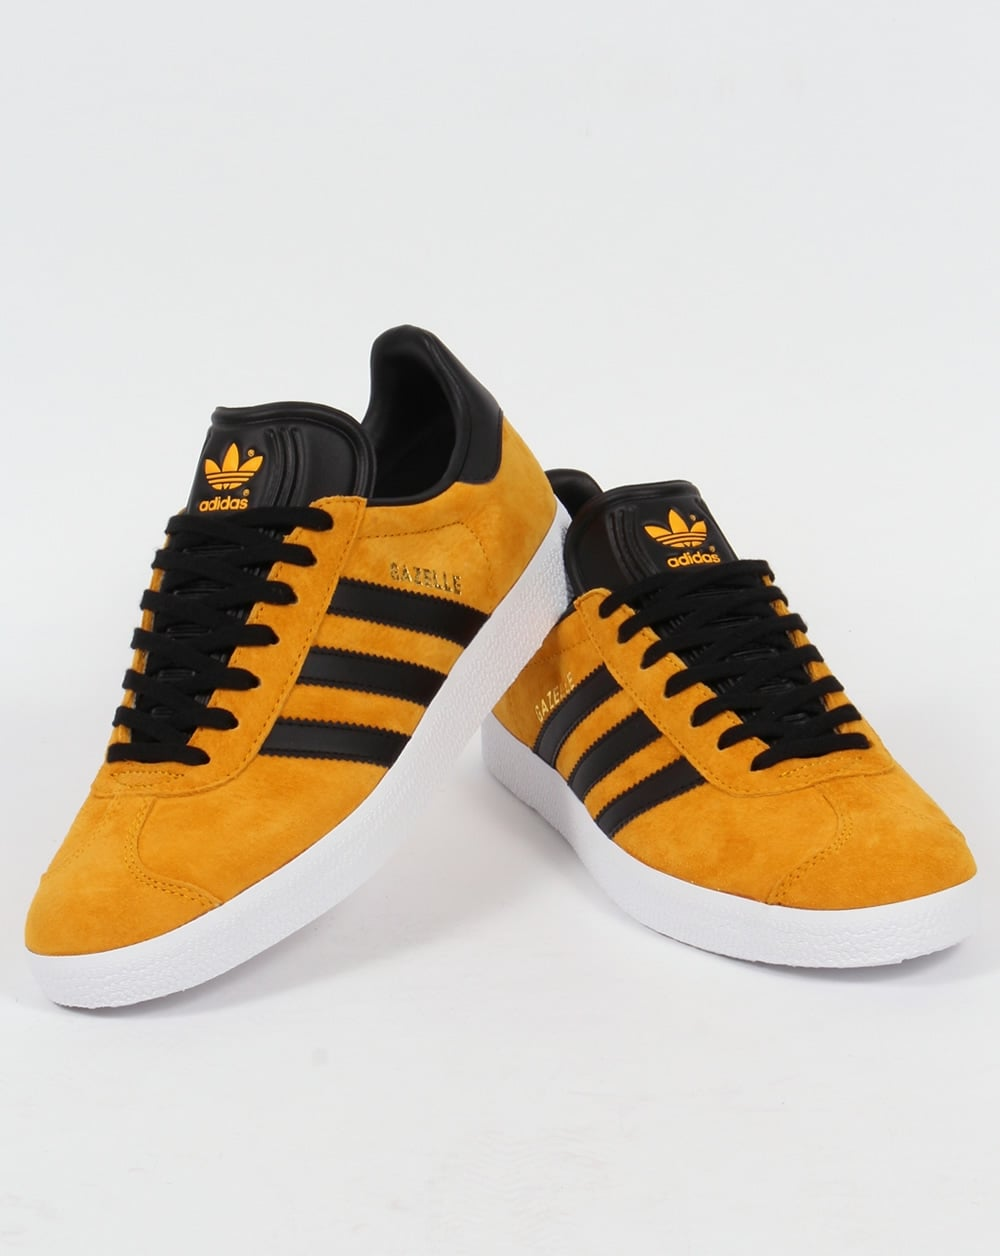 Adidas Gazelle Trainers Collegiate Gold/Black